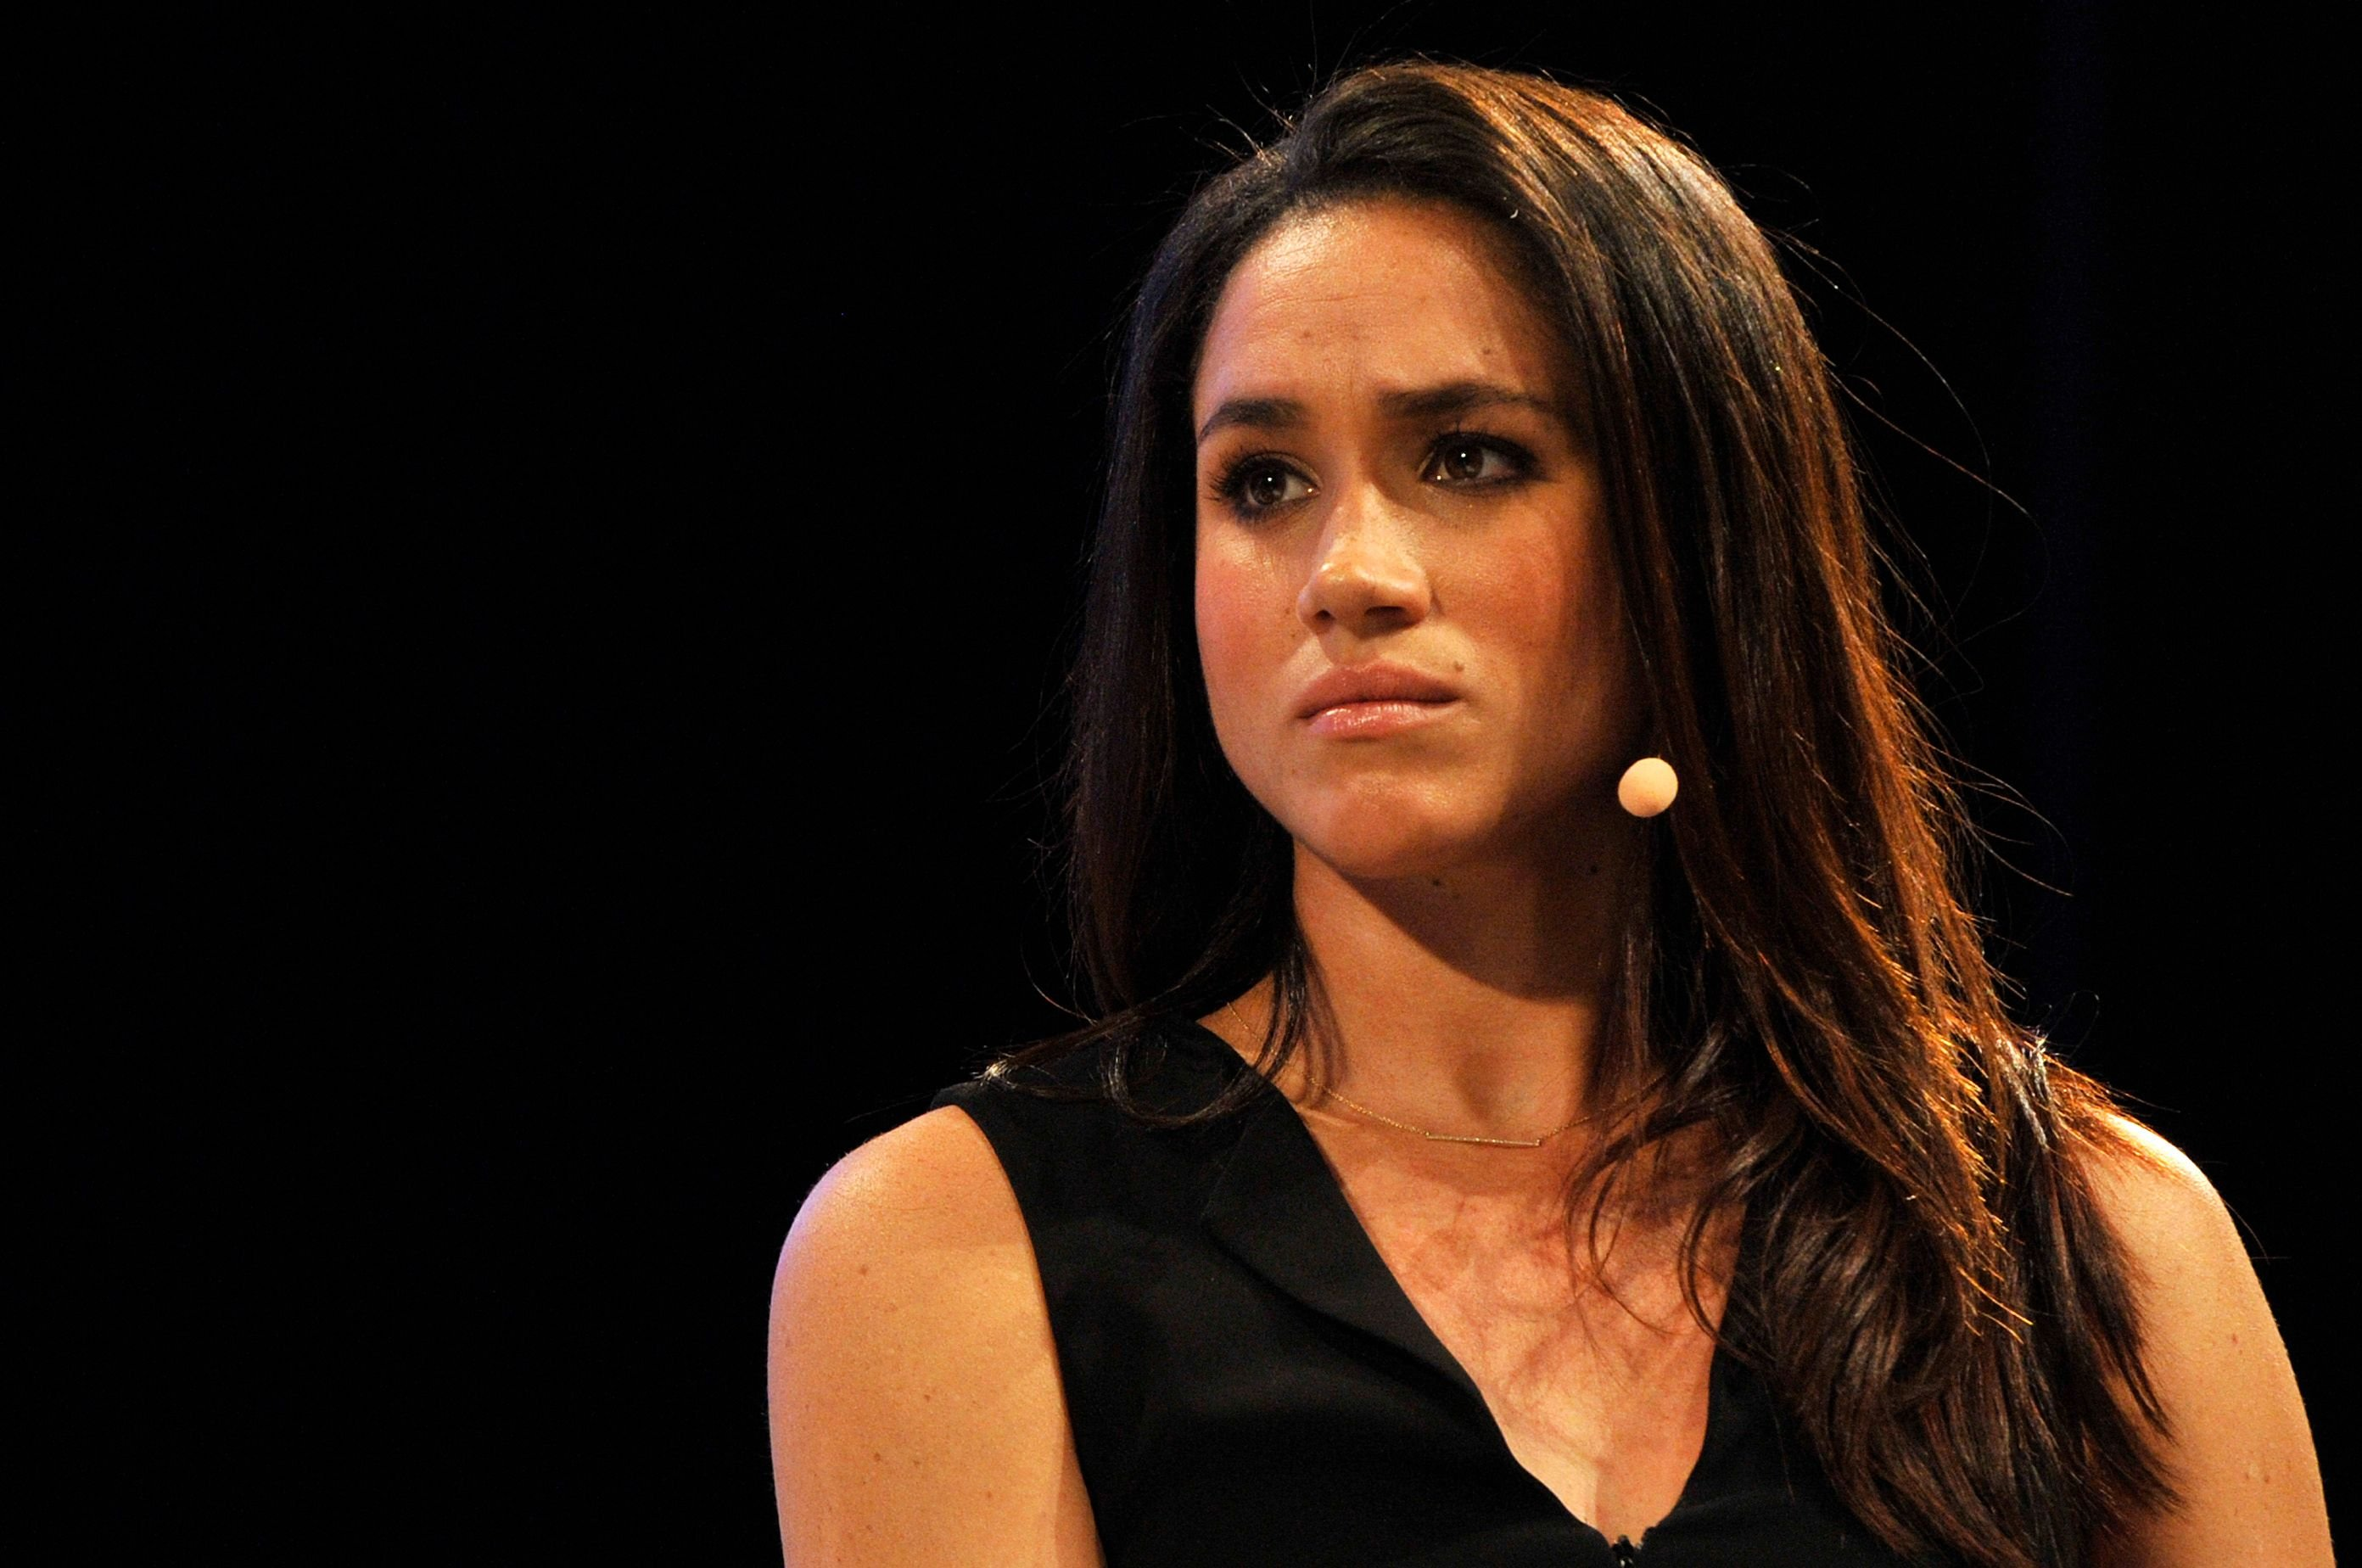 """Meghan Markle at the """"Bridging the Gender Gap"""" special session at the Convention Centre on October 17, 2014, in Dublin, Ireland   Photo: Clodagh Kilcoyne/Getty Images"""